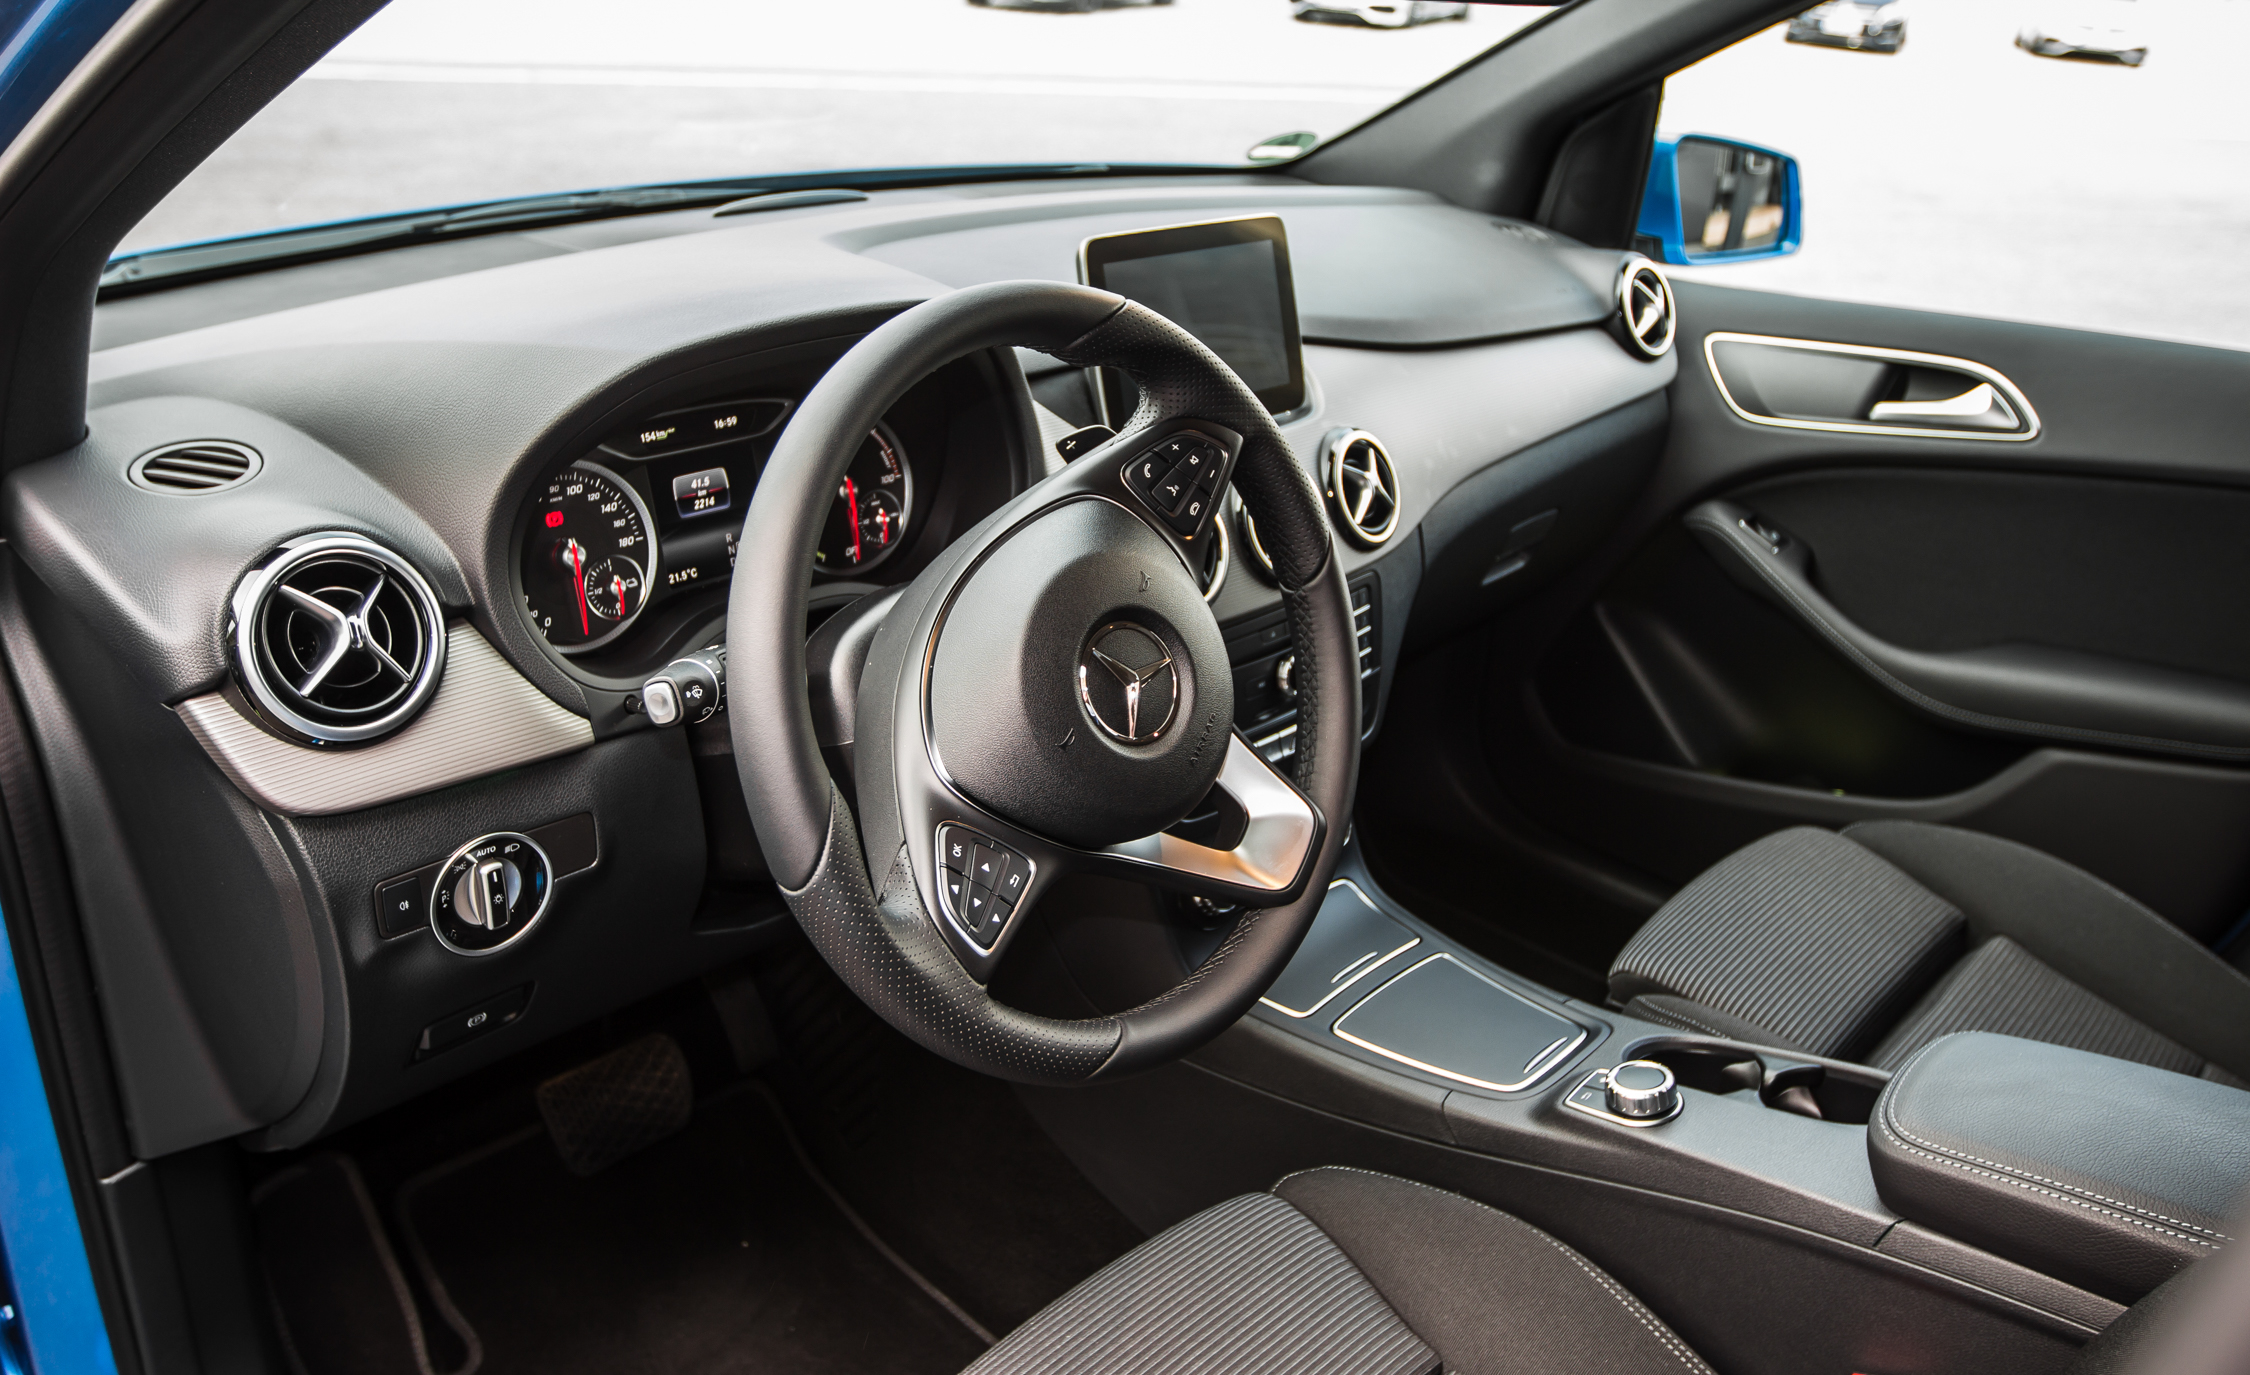 2017 Mercedes Benz B250e Interior Driver Cockpit (Photo 10 of 24)